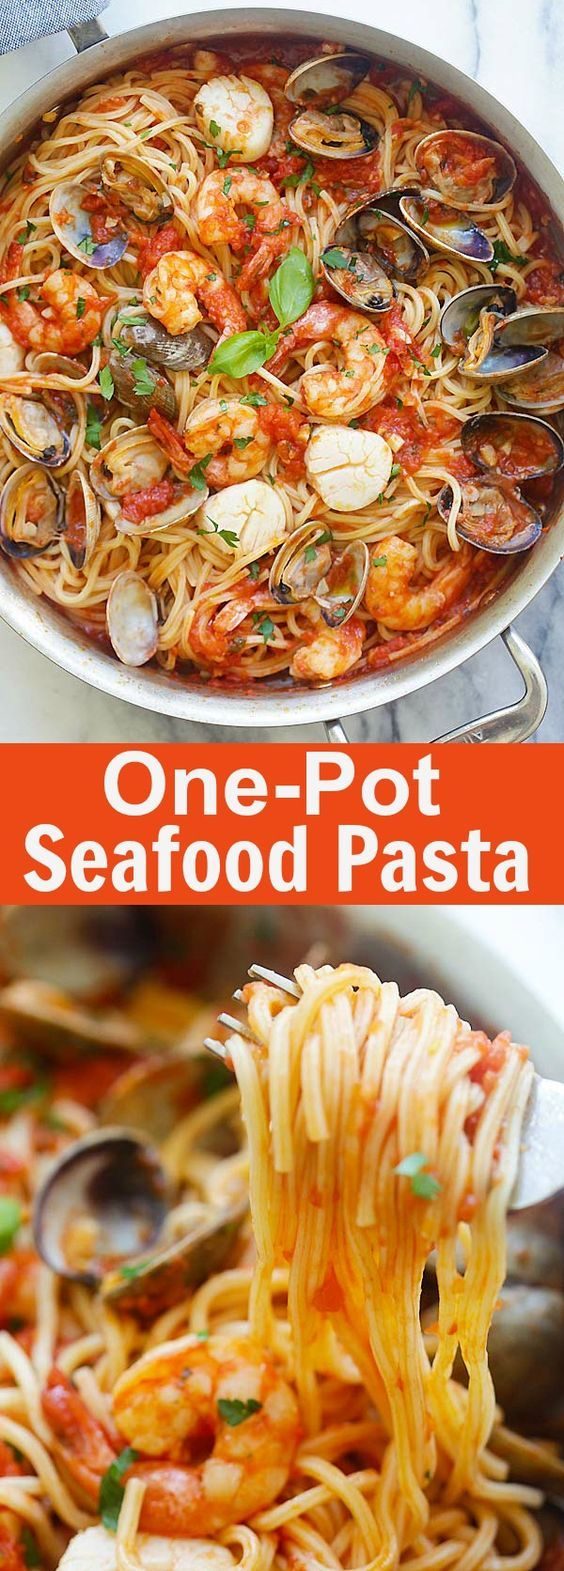 One Pot Seafood Pasta – easy seafood pasta cooked in one pot. Quick and delicious dinner that you can whip up in less than 30 mins | rasamalaysia.com